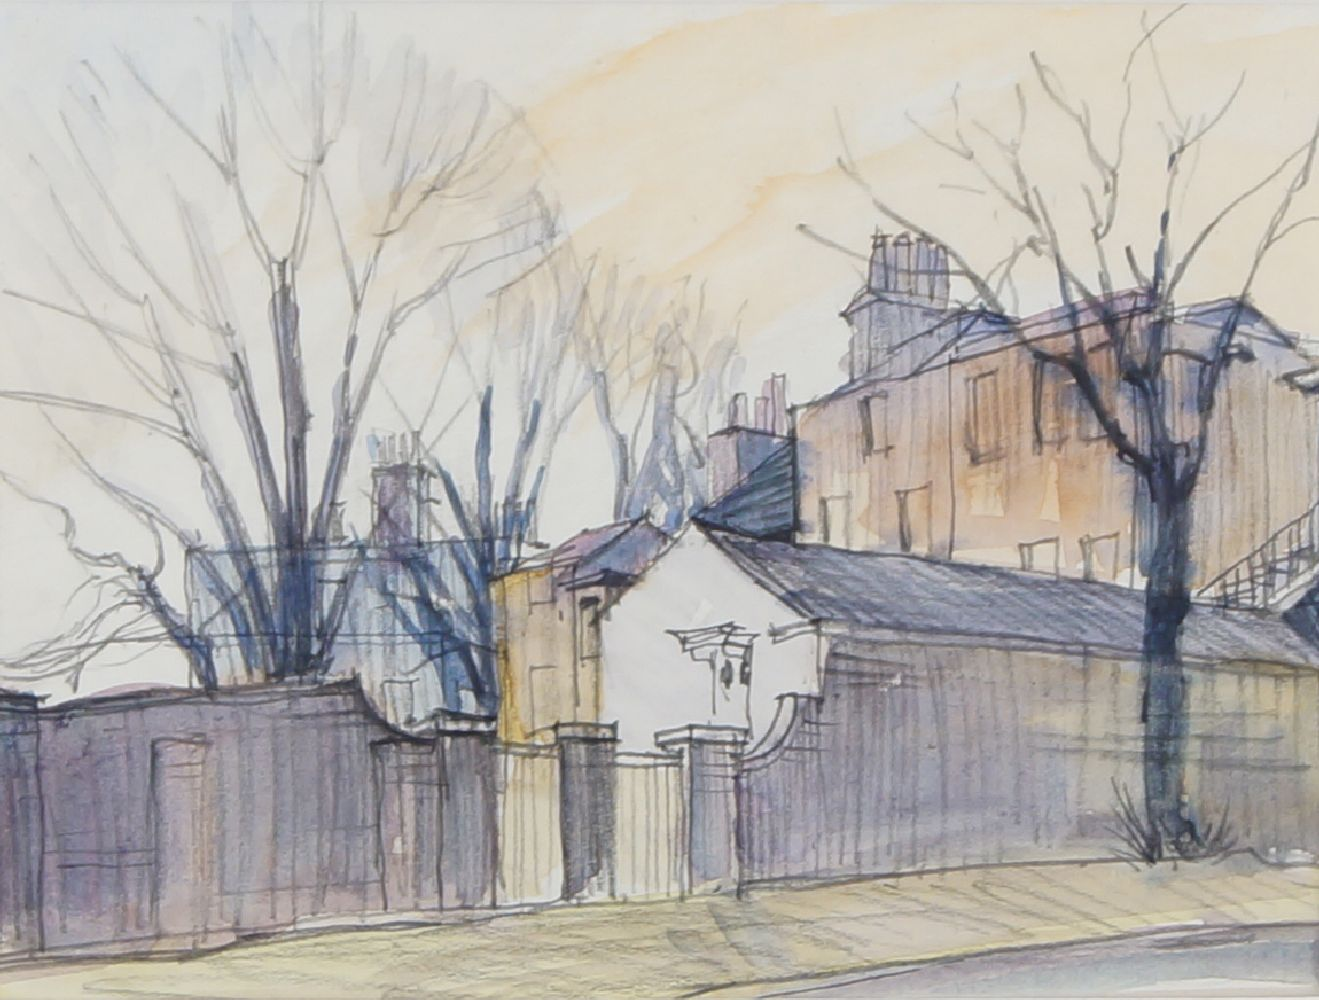 Fyffe Christie, British, 1918-1979- Millhouse, Blackheath Sunset; watercolour, signed and dated - Image 2 of 3